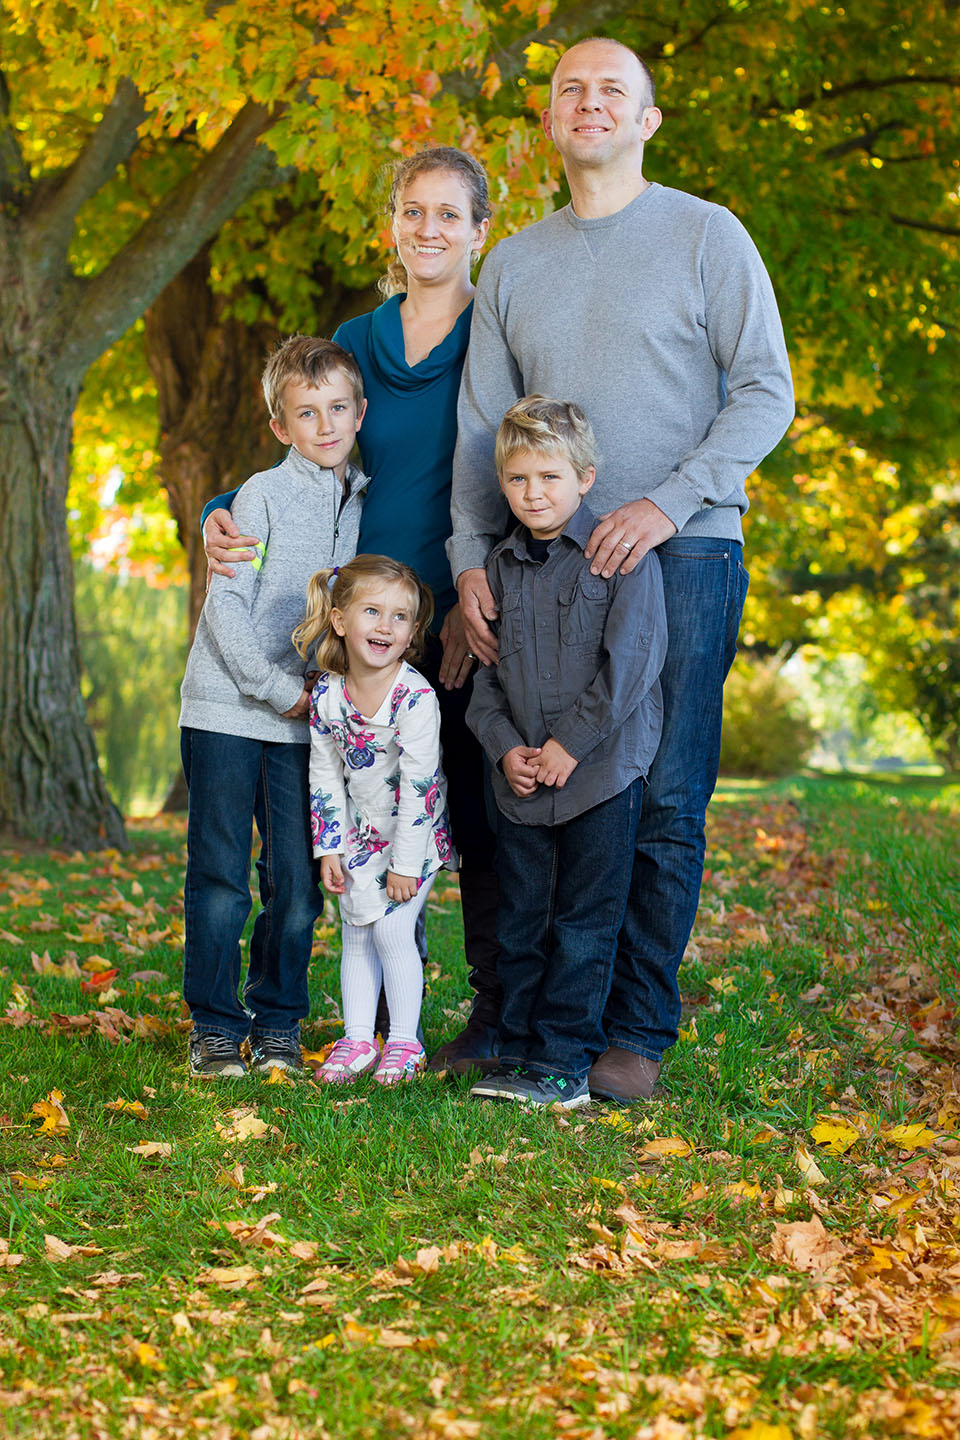 Family pictures in Hockley, taken by Frank Myrland Photography